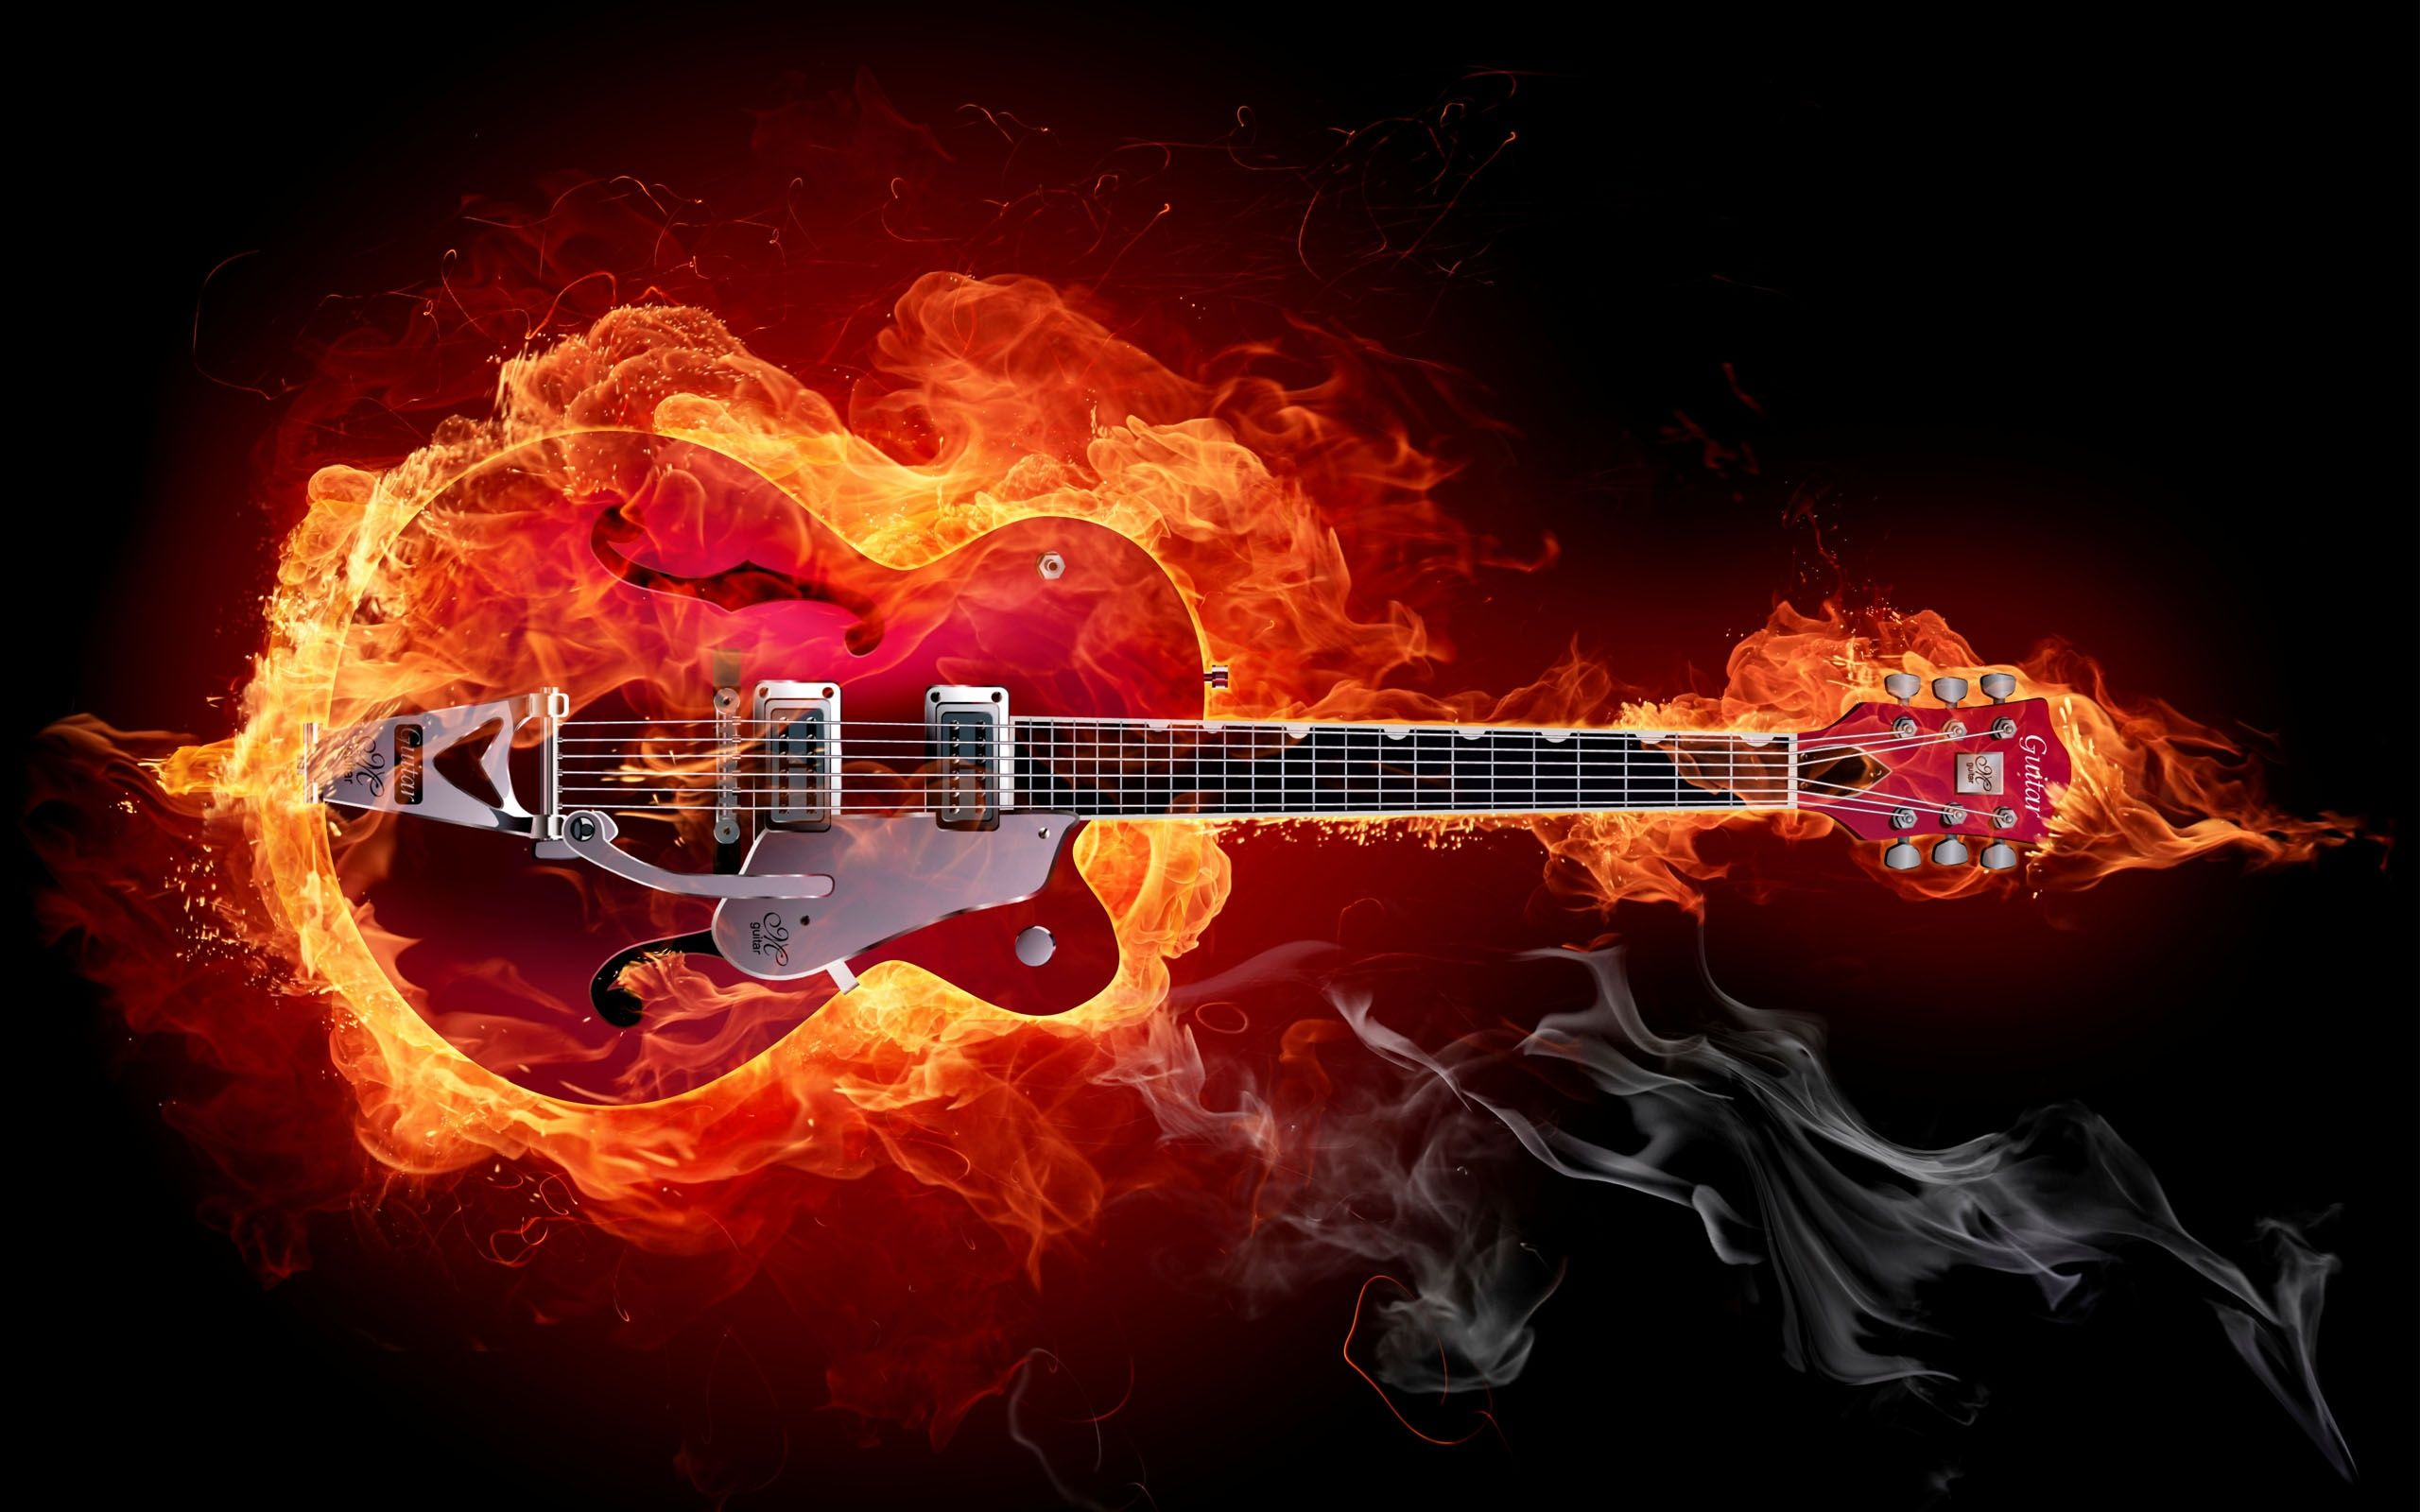 Hard Rock Guitar WallPaper HD - http://imashon.com/w/hard-rock ...